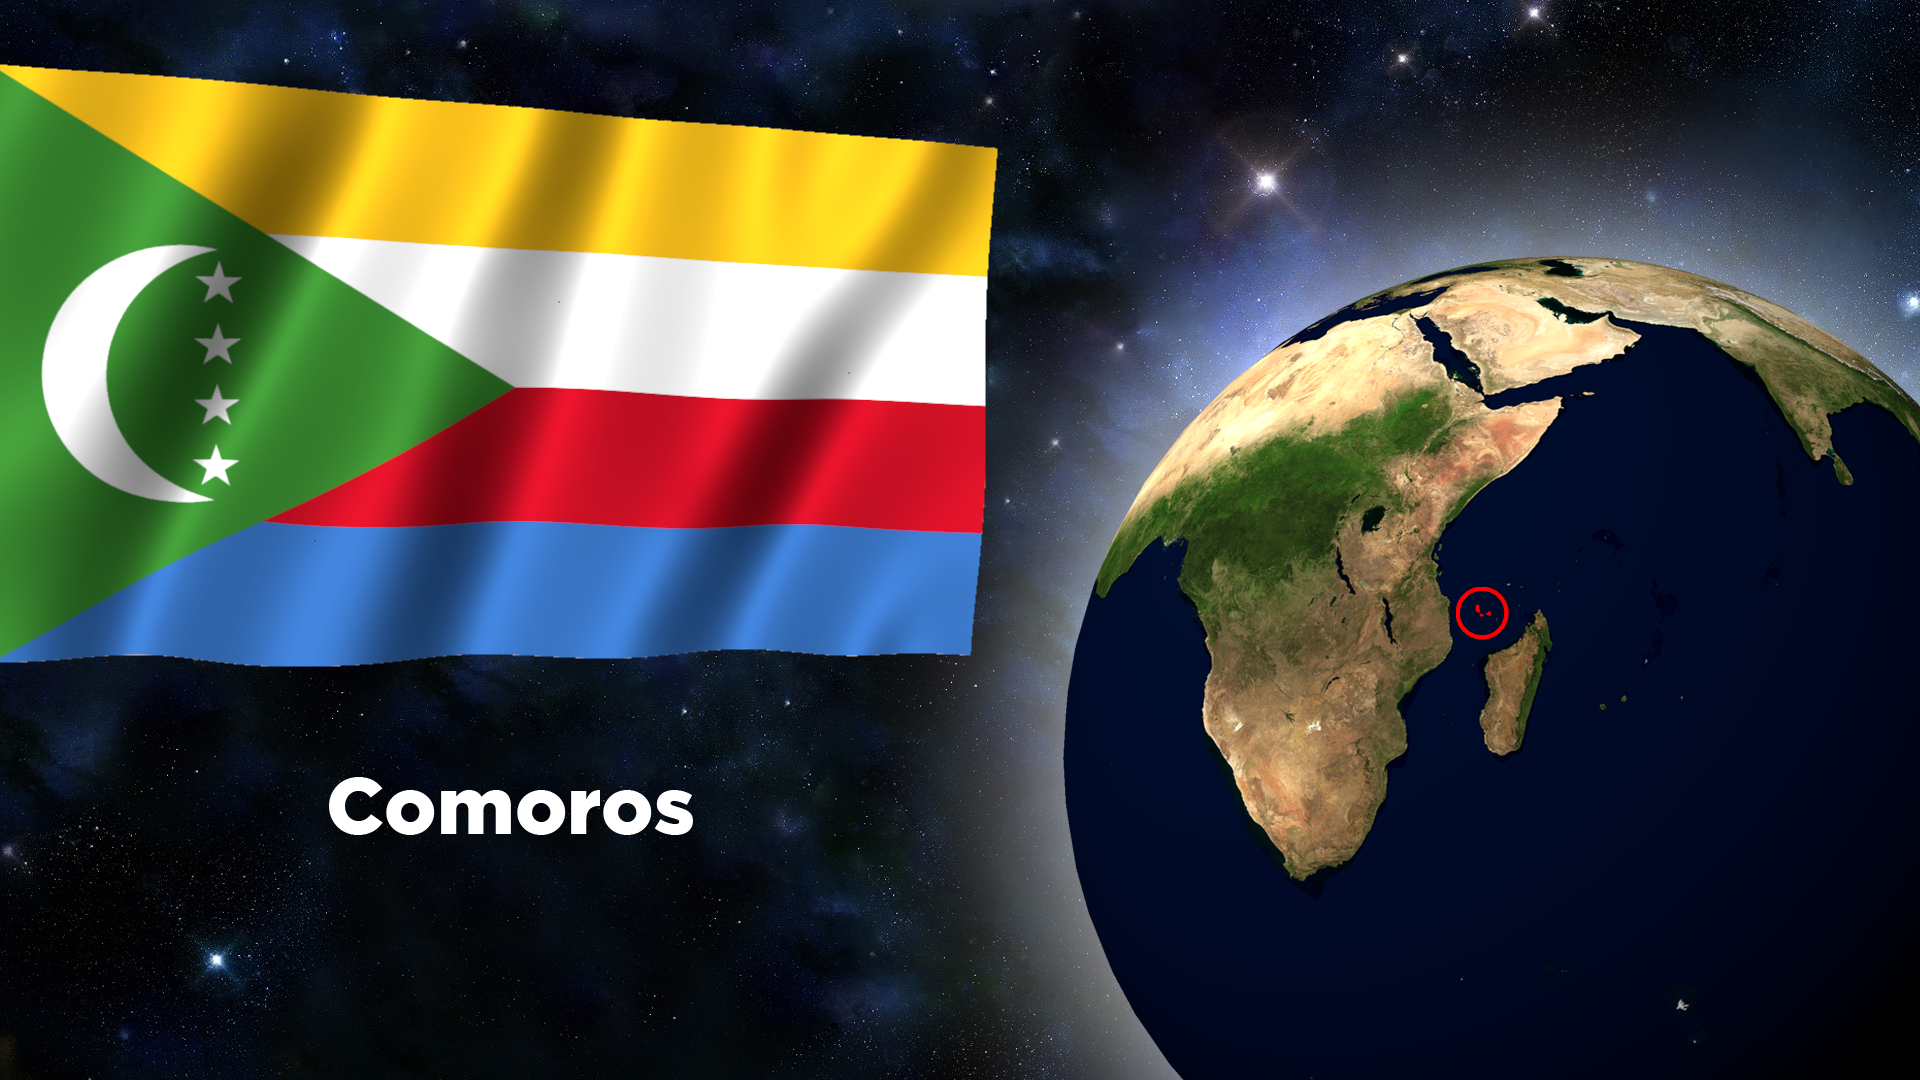 Flag Wallpaper - Comoros by darellnonis